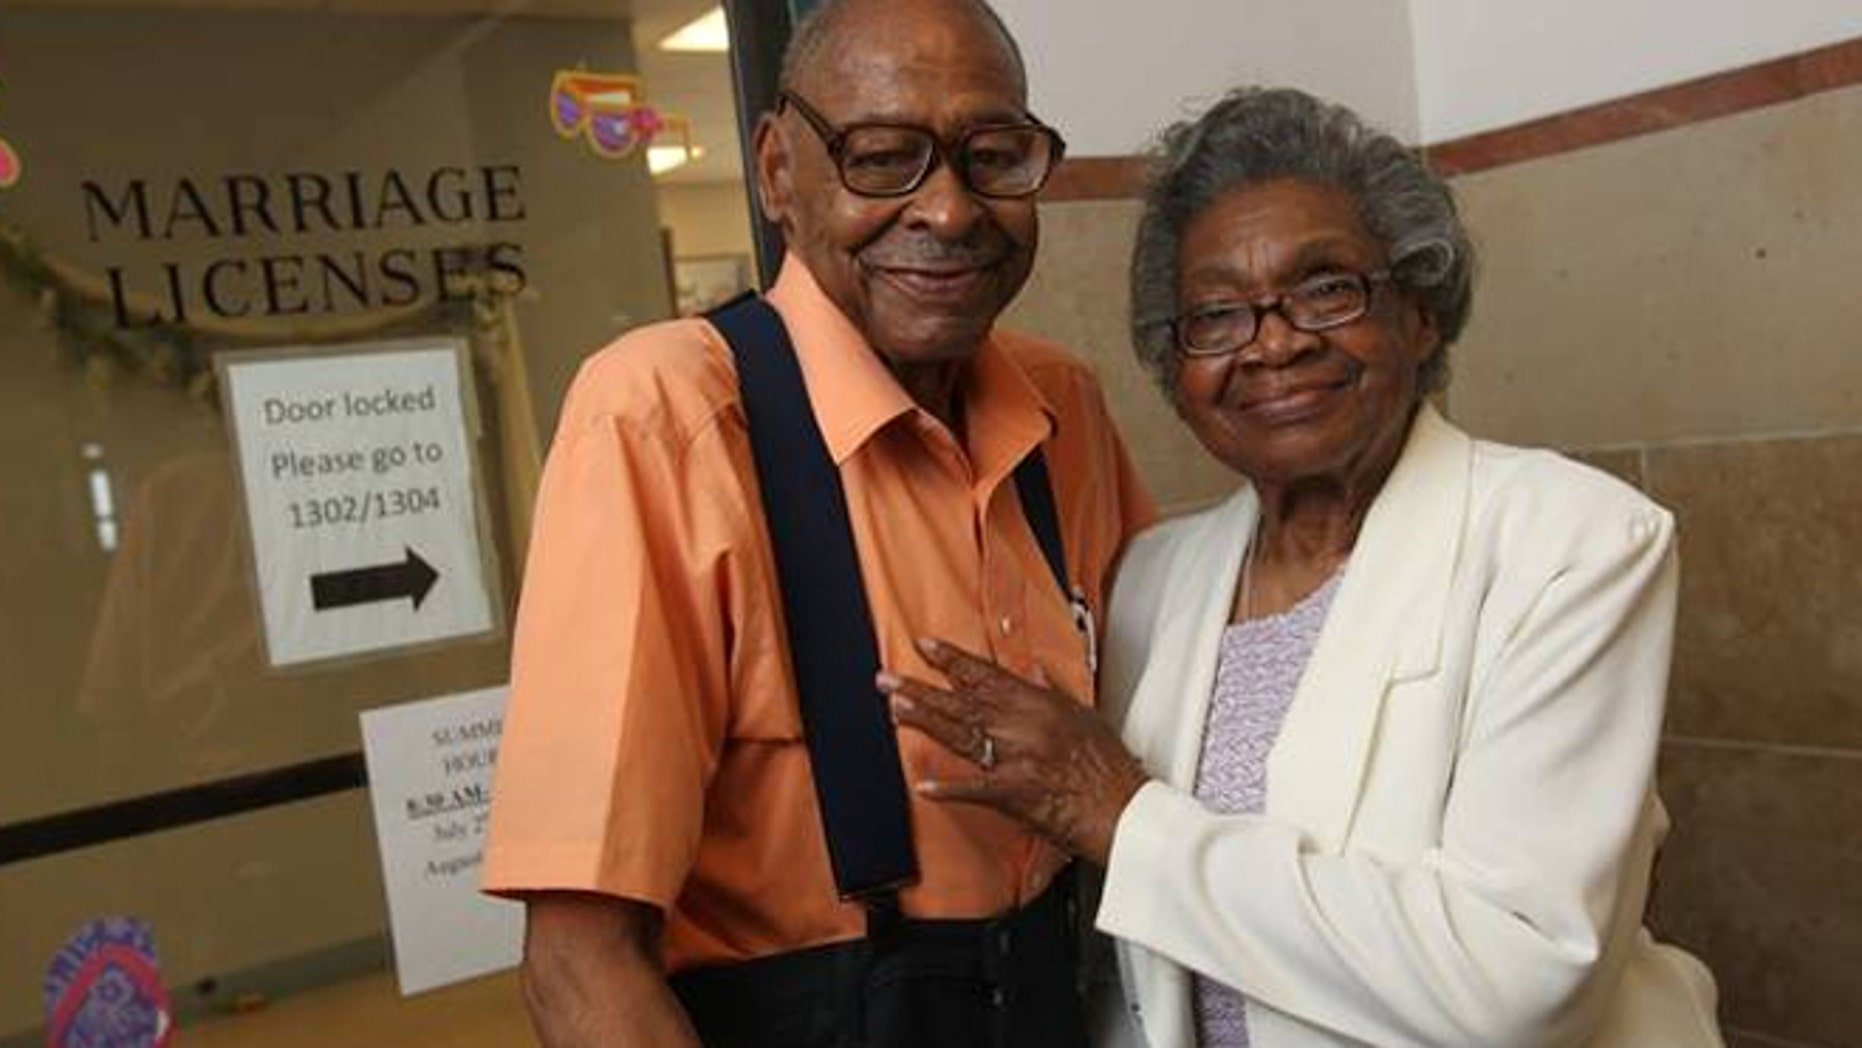 After nearly 50 years separated, Roland Davis and Lena Henderson are remarrying Saturday.